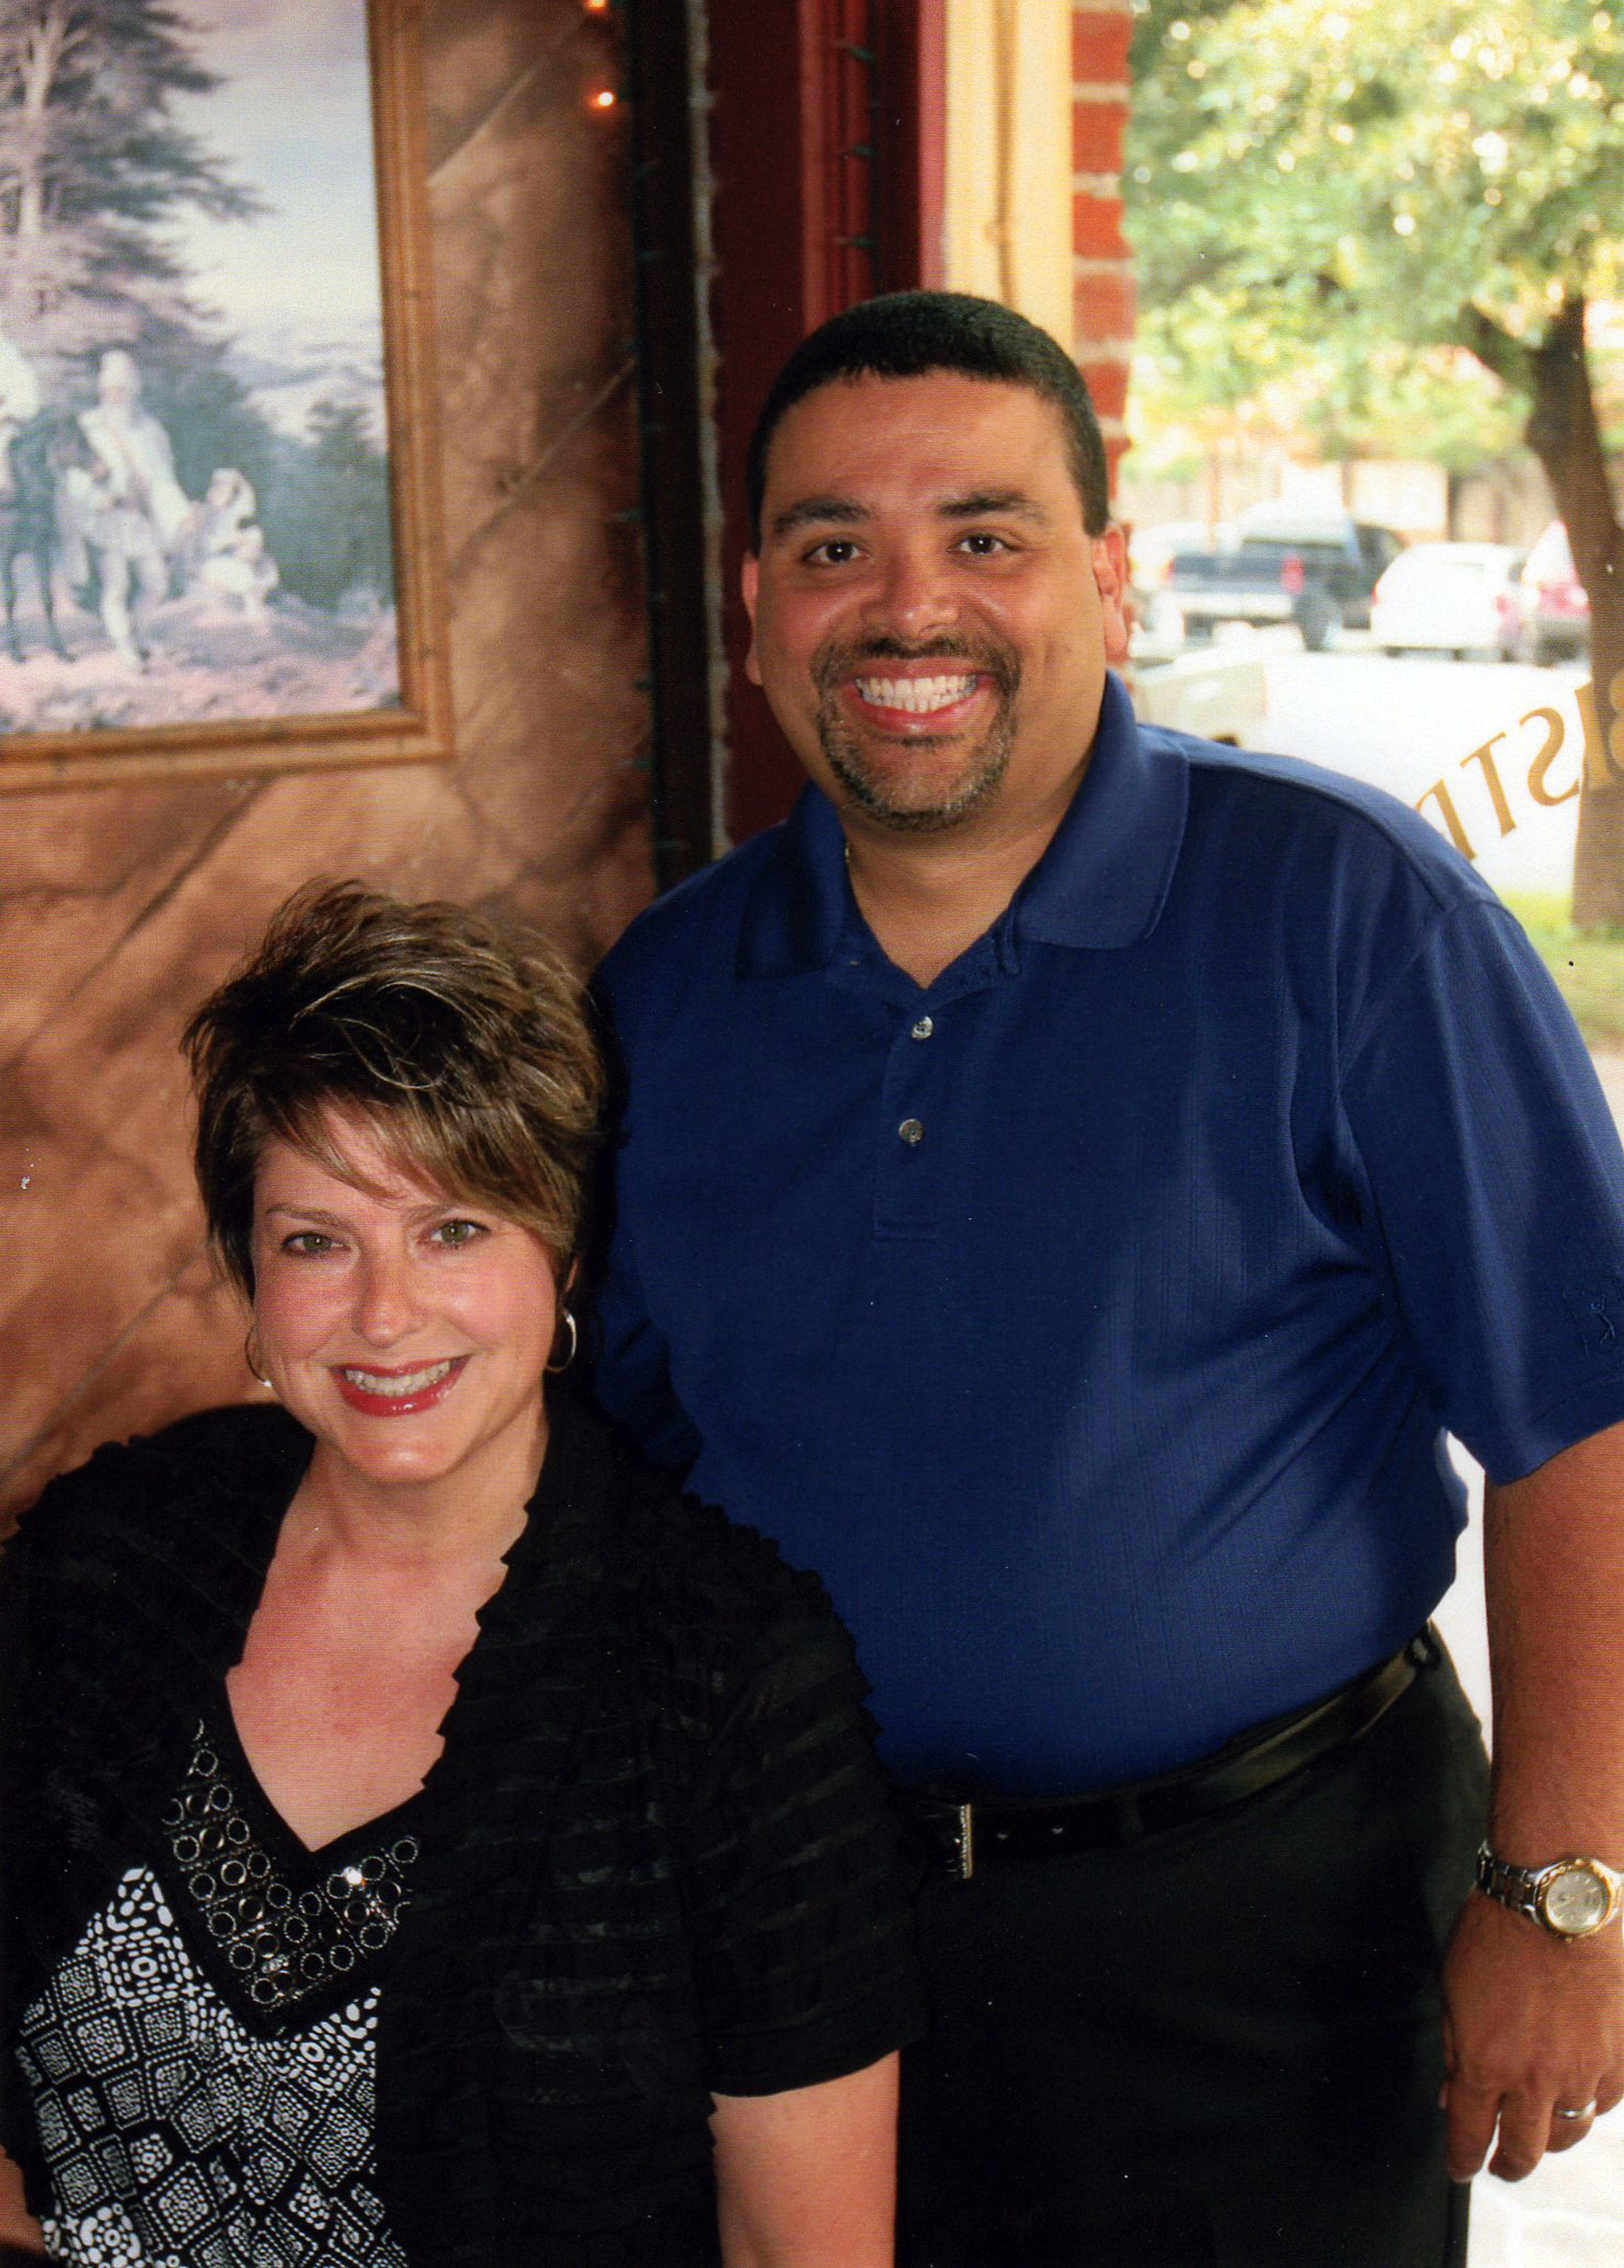 Stacey and Jose Figueroa